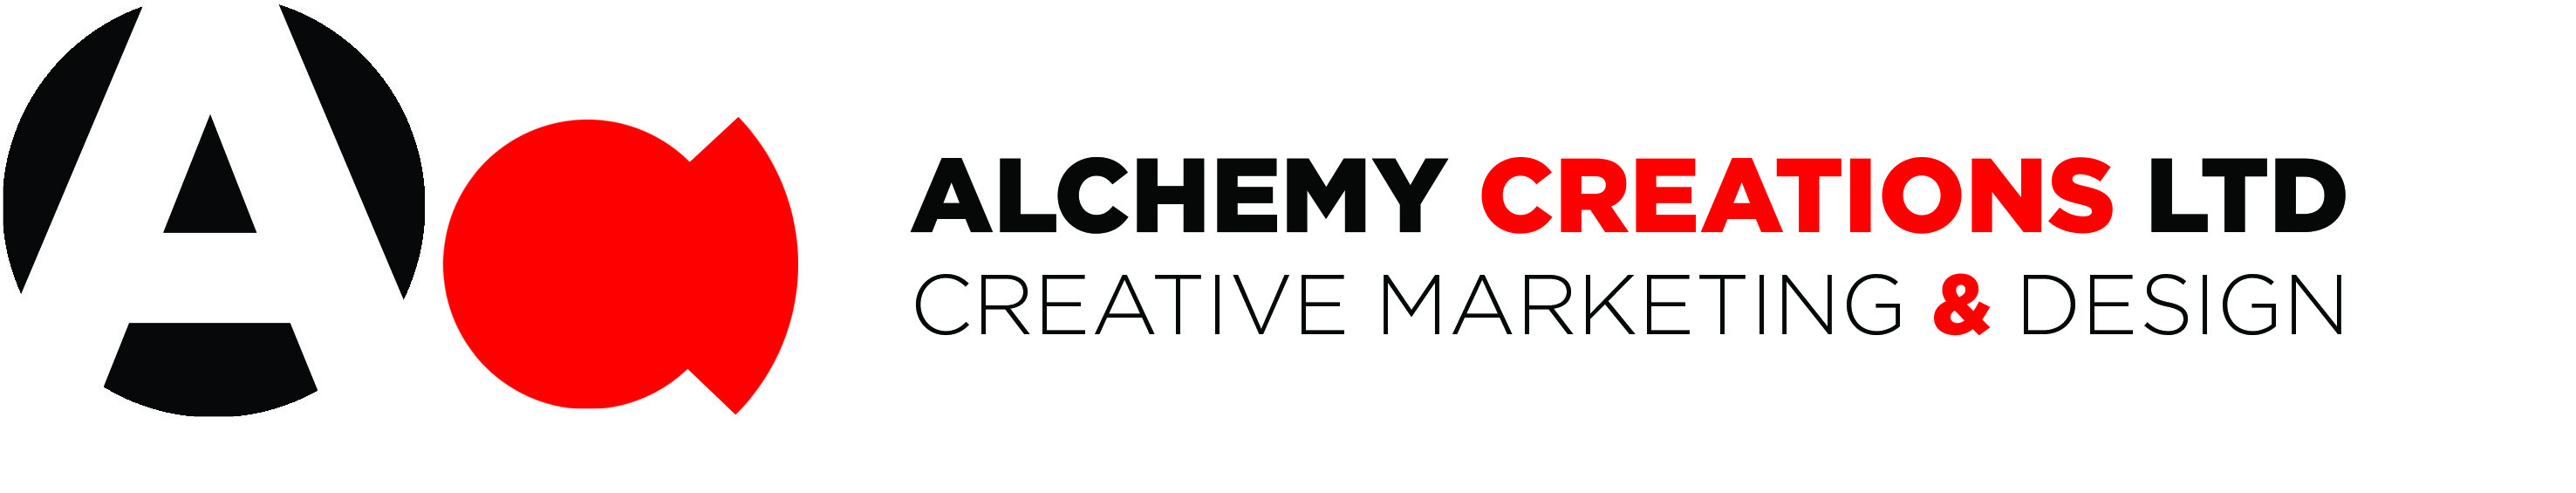 Alchemy Creations